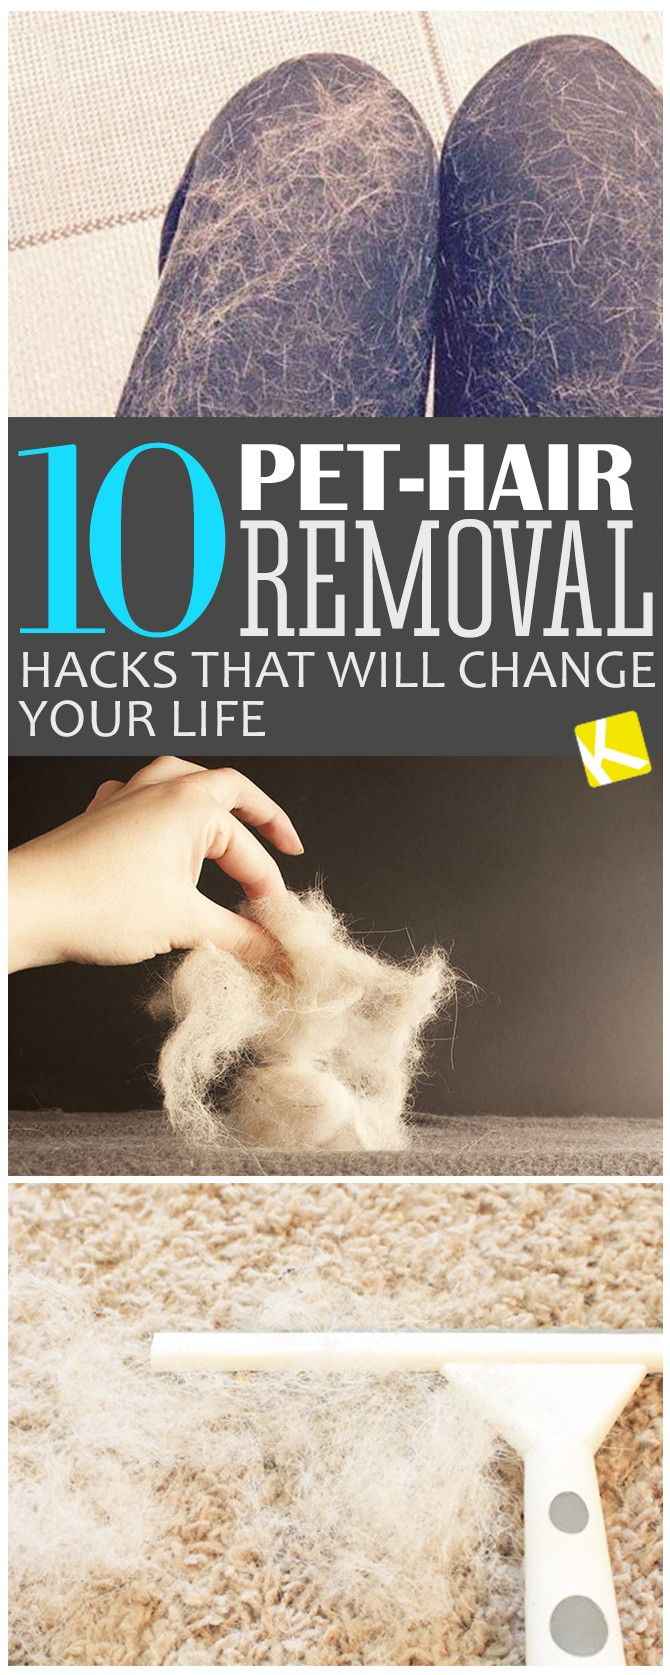 10 Pet Hair Removal Hacks That Will Change Your Life Via The Krazy Coupon Lady Pet Hair Removal Pet Hair House Cleaning Tips